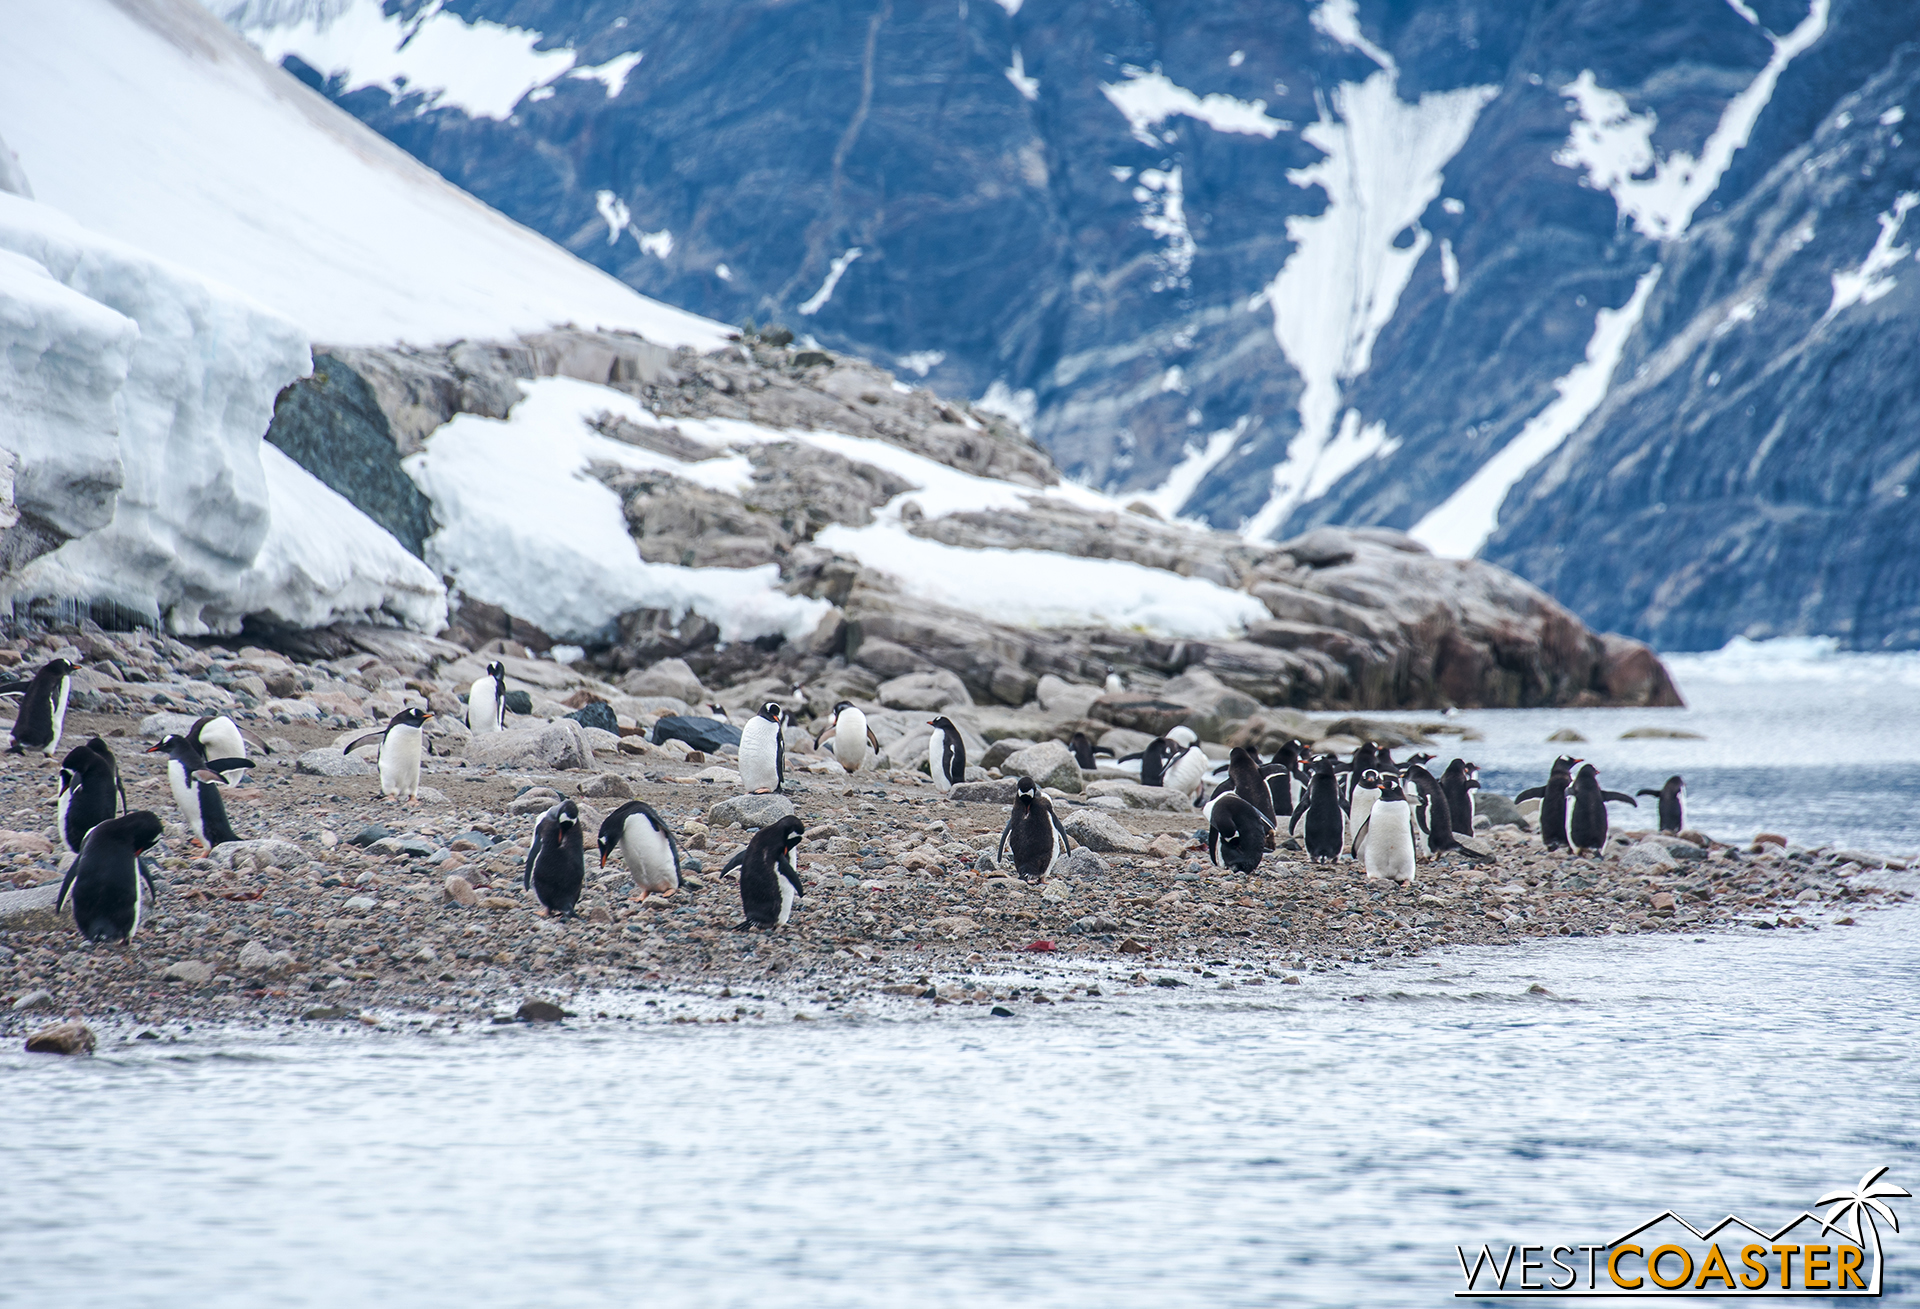 Penguins line the beach and observe their new visitors.